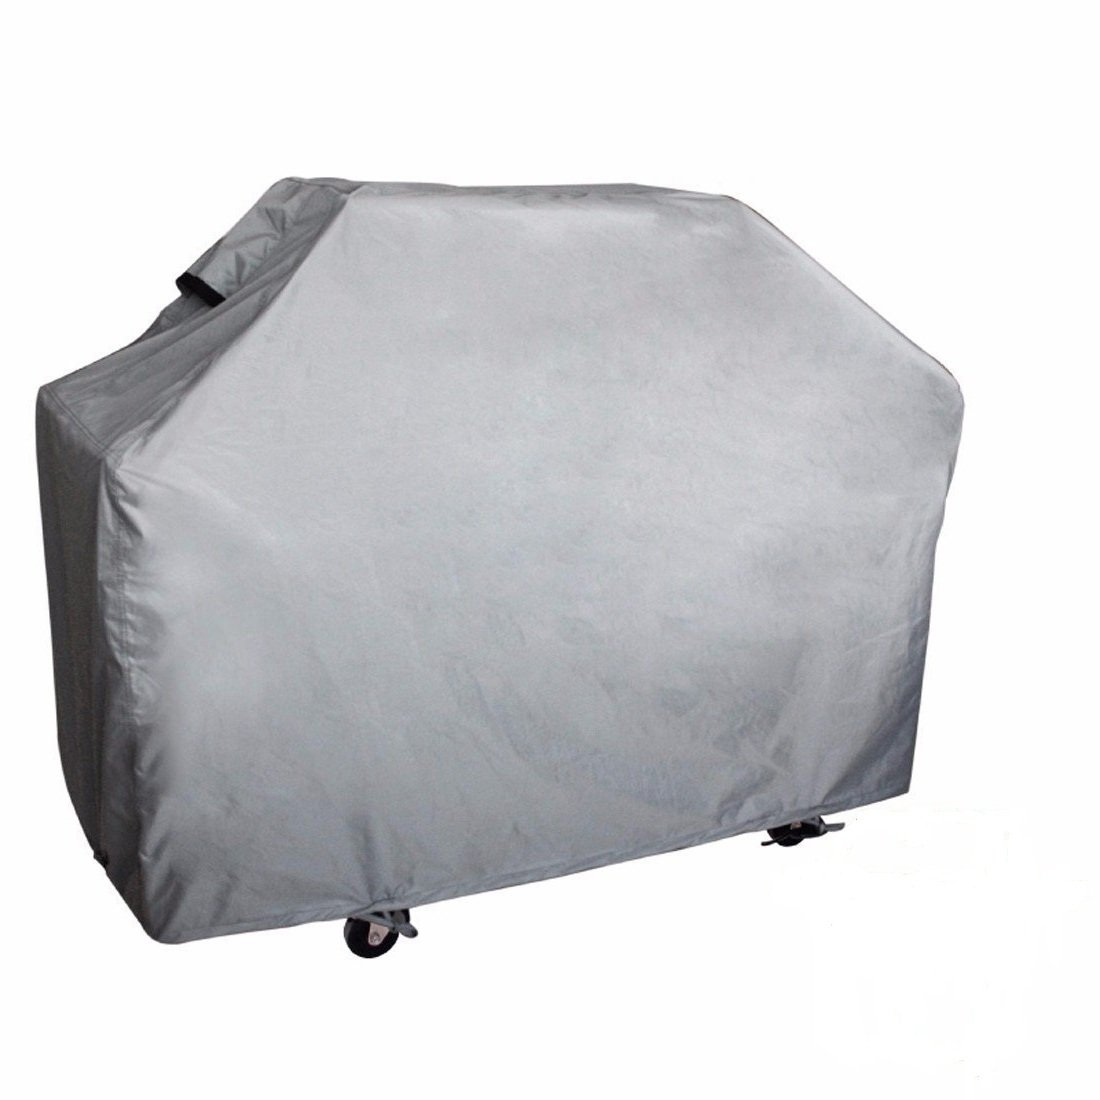 100% Waterproof Heavy Duty Outdoor Cart BBQ Cover Patio Gas Barbecue Grill Cover XX-Large Up To 72 in.L